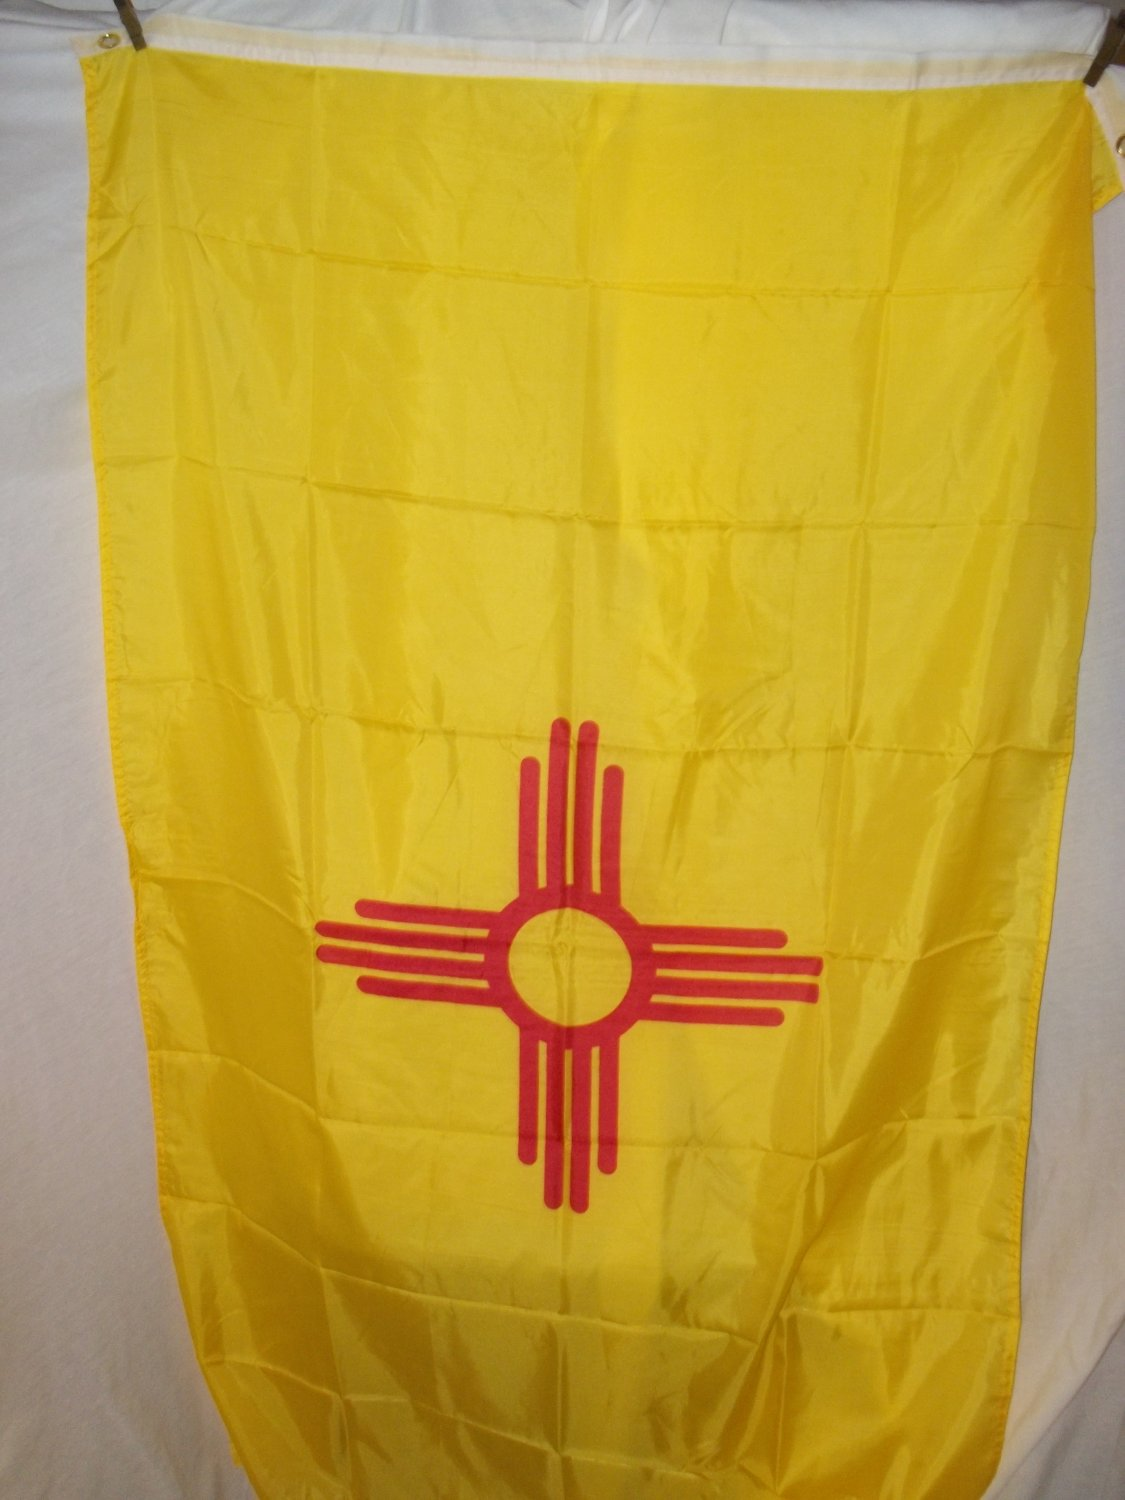 NEW MEXICO STATE FLAG SIZE 3 X 5 3X5 FEET NEW